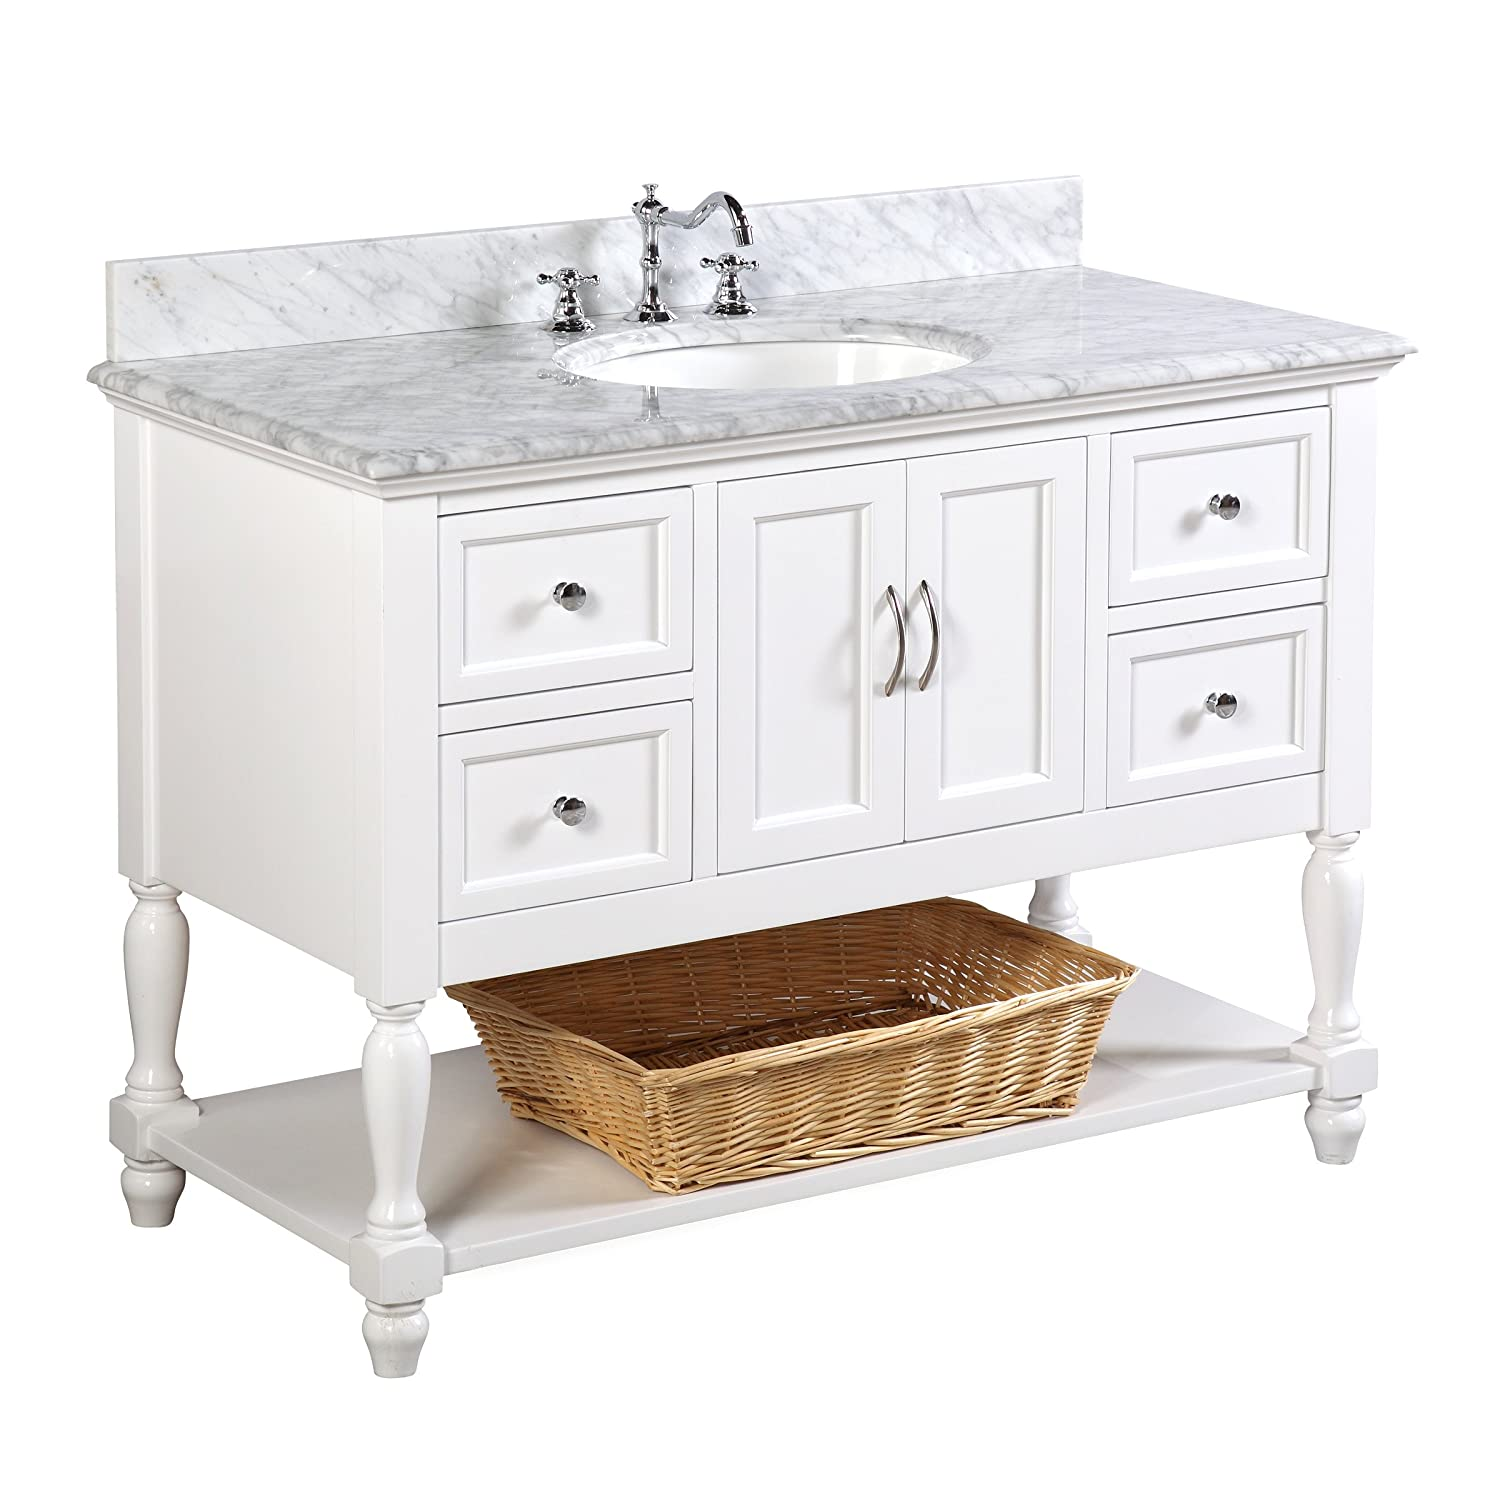 Beverly 48 inch Bathroom Vanity Carrara White Includes